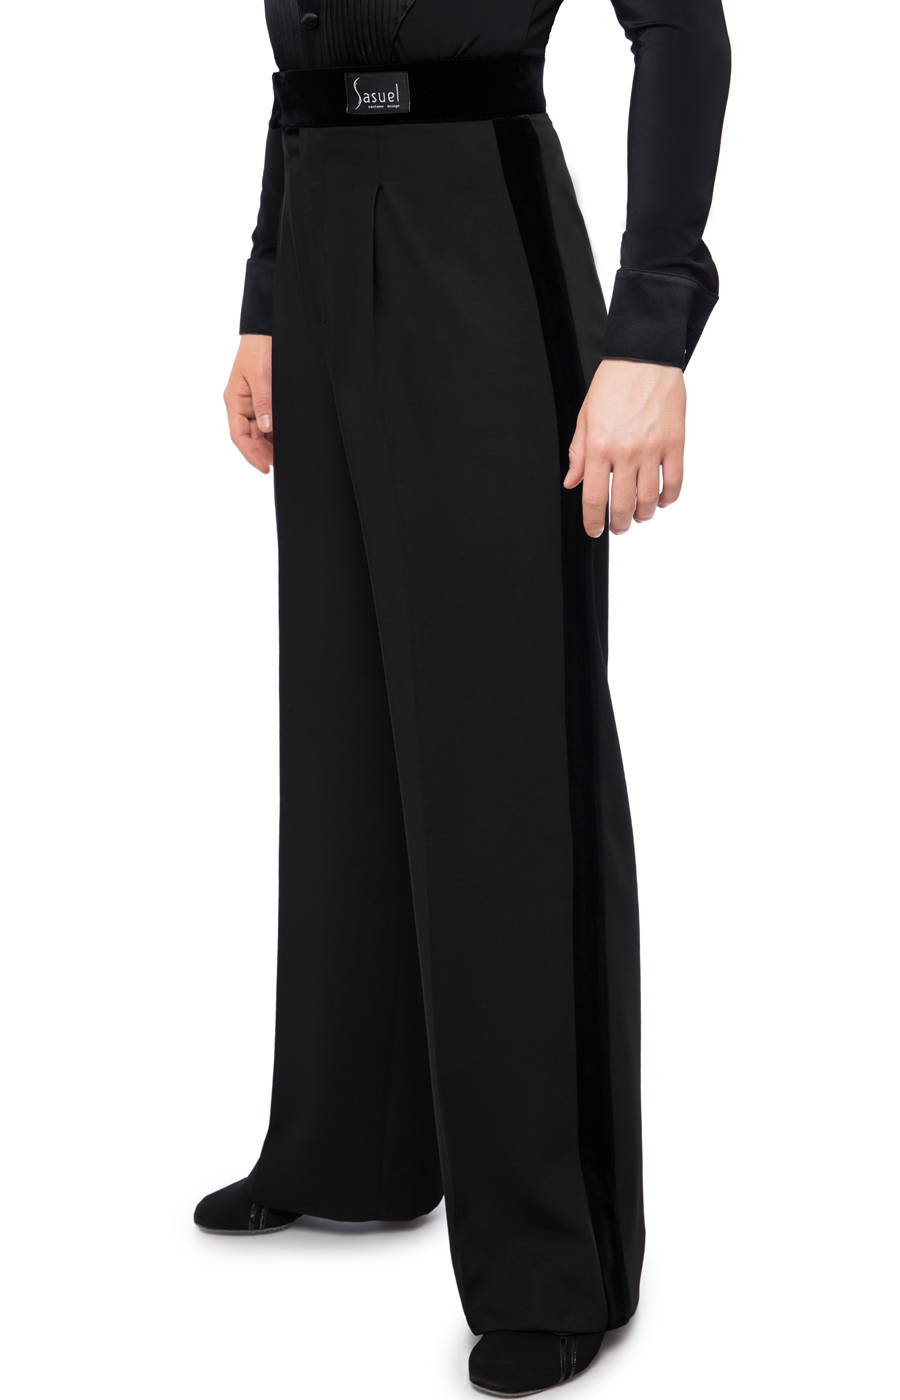 Latin trousers 1x pleat with velvet binding